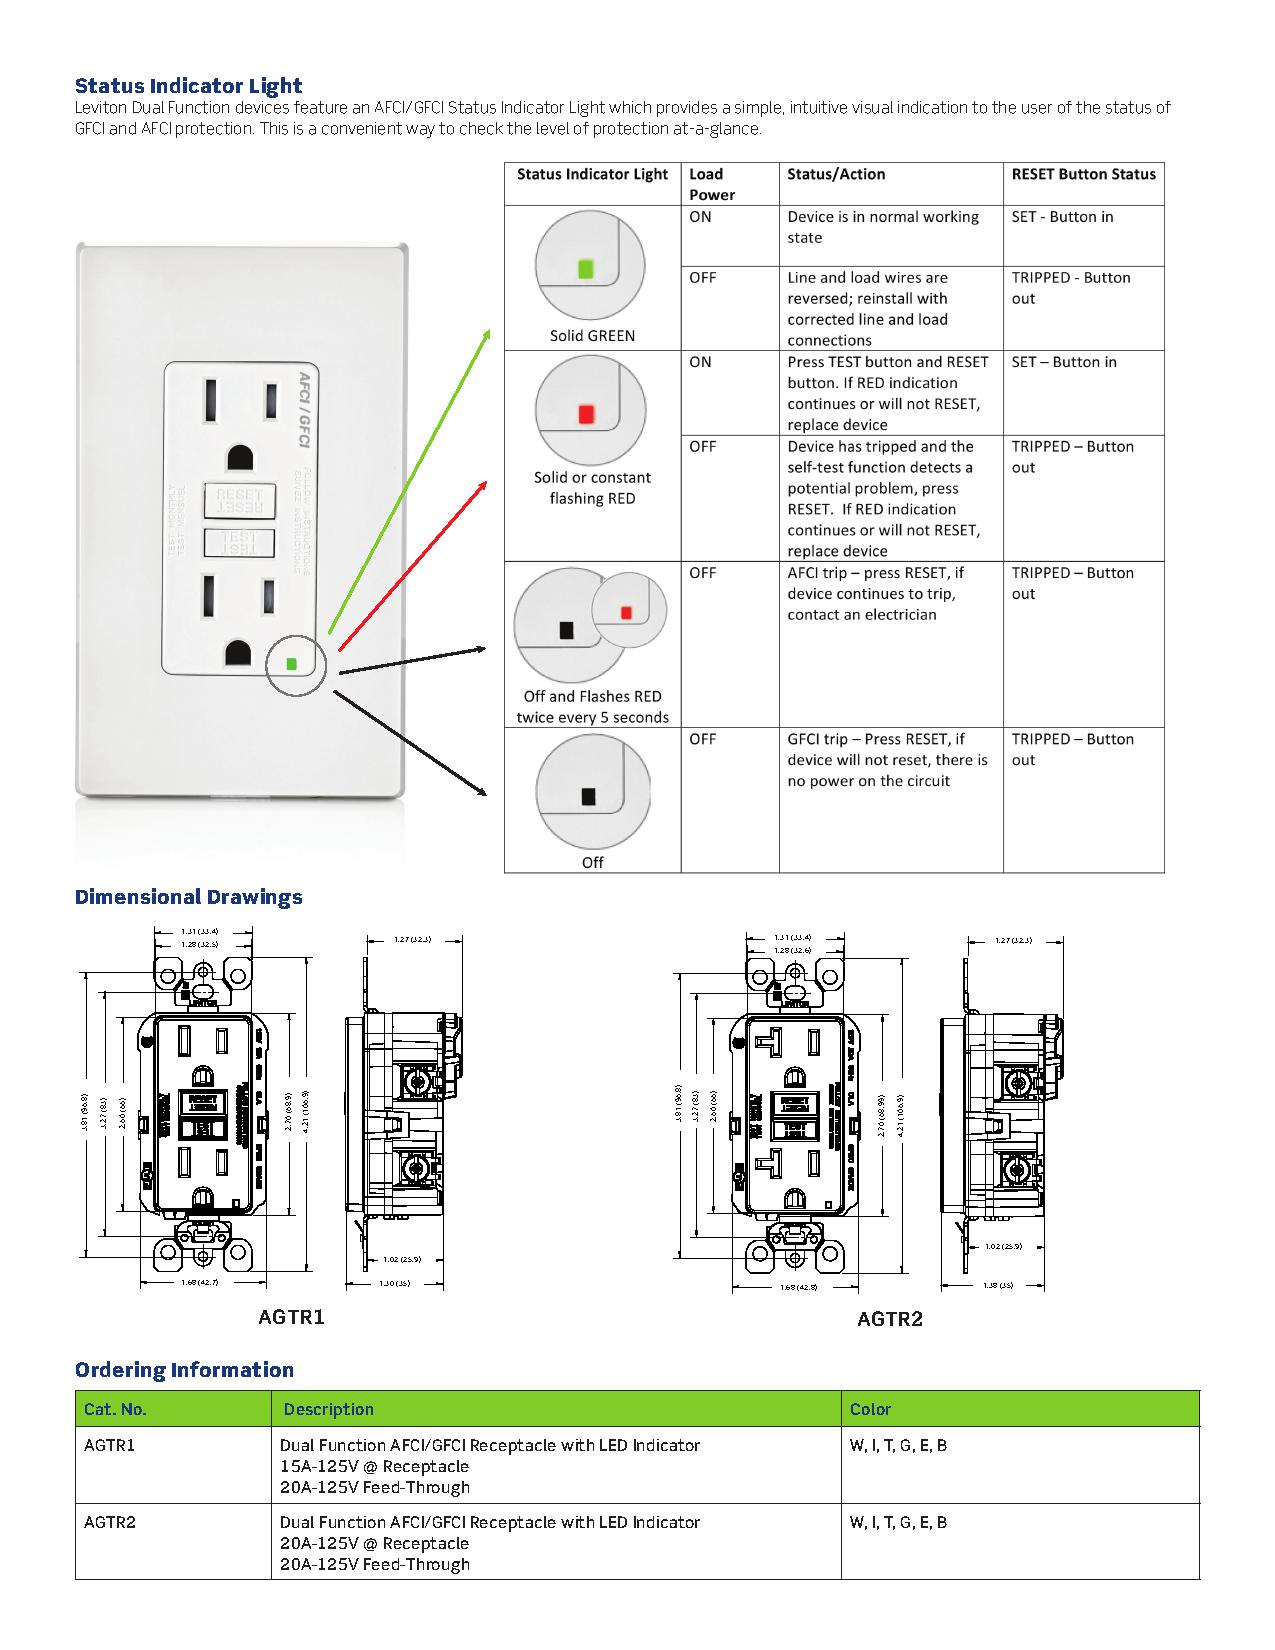 gfci wiring diagrams jaguar s type radio diagram leviton osfhw wet location external high bay occupancy